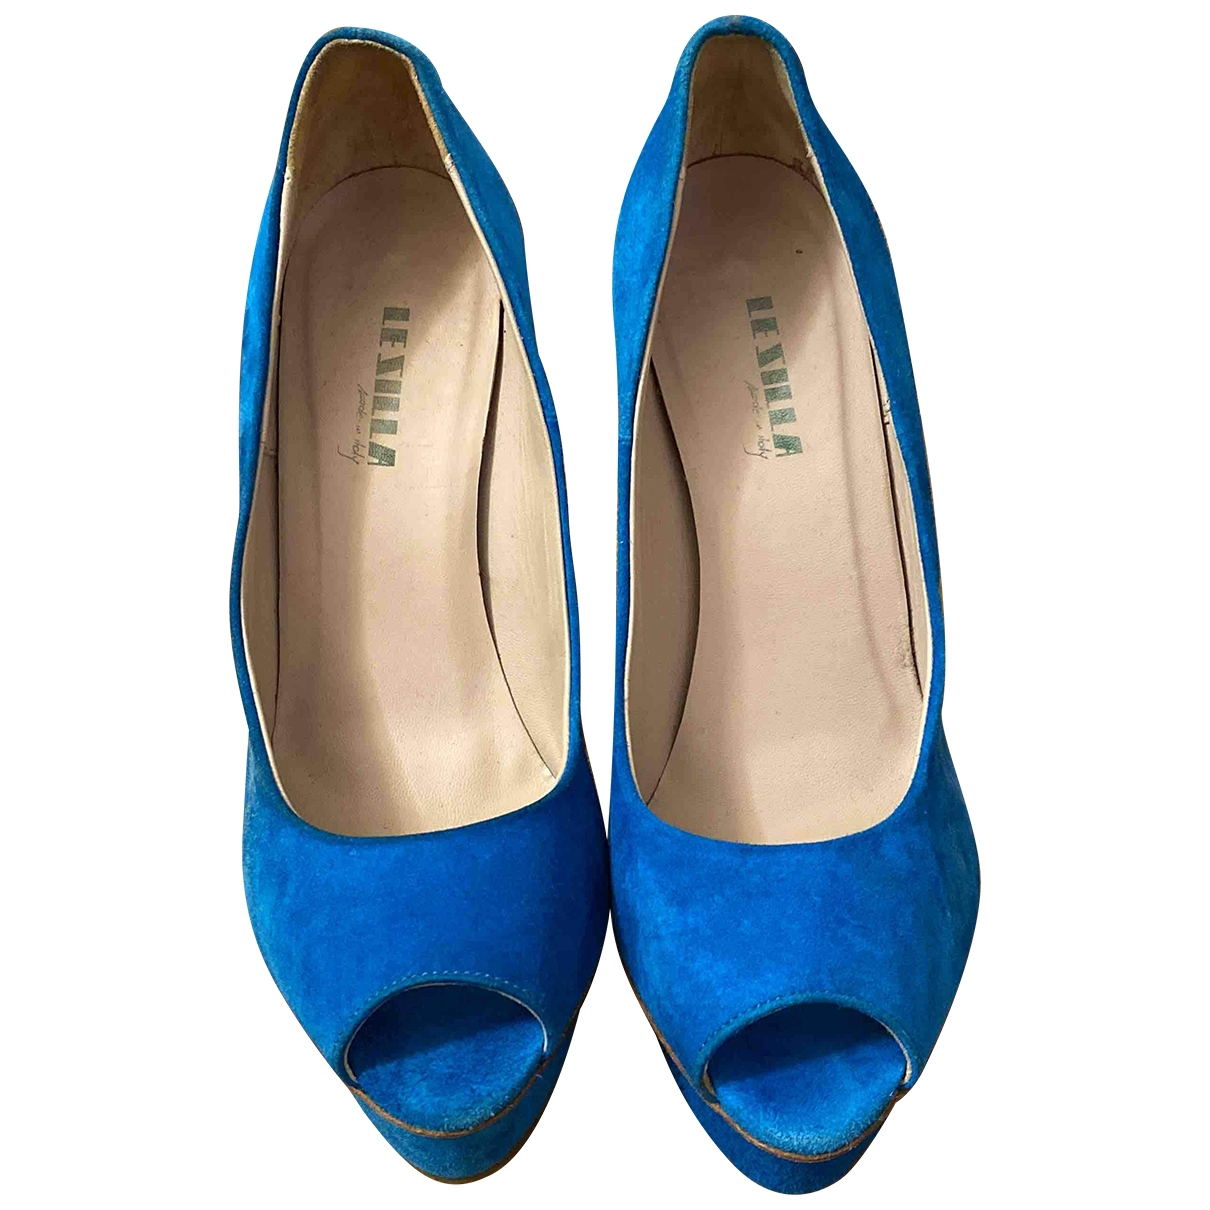 Le Silla \N Turquoise Suede Heels for Women 37.5 IT